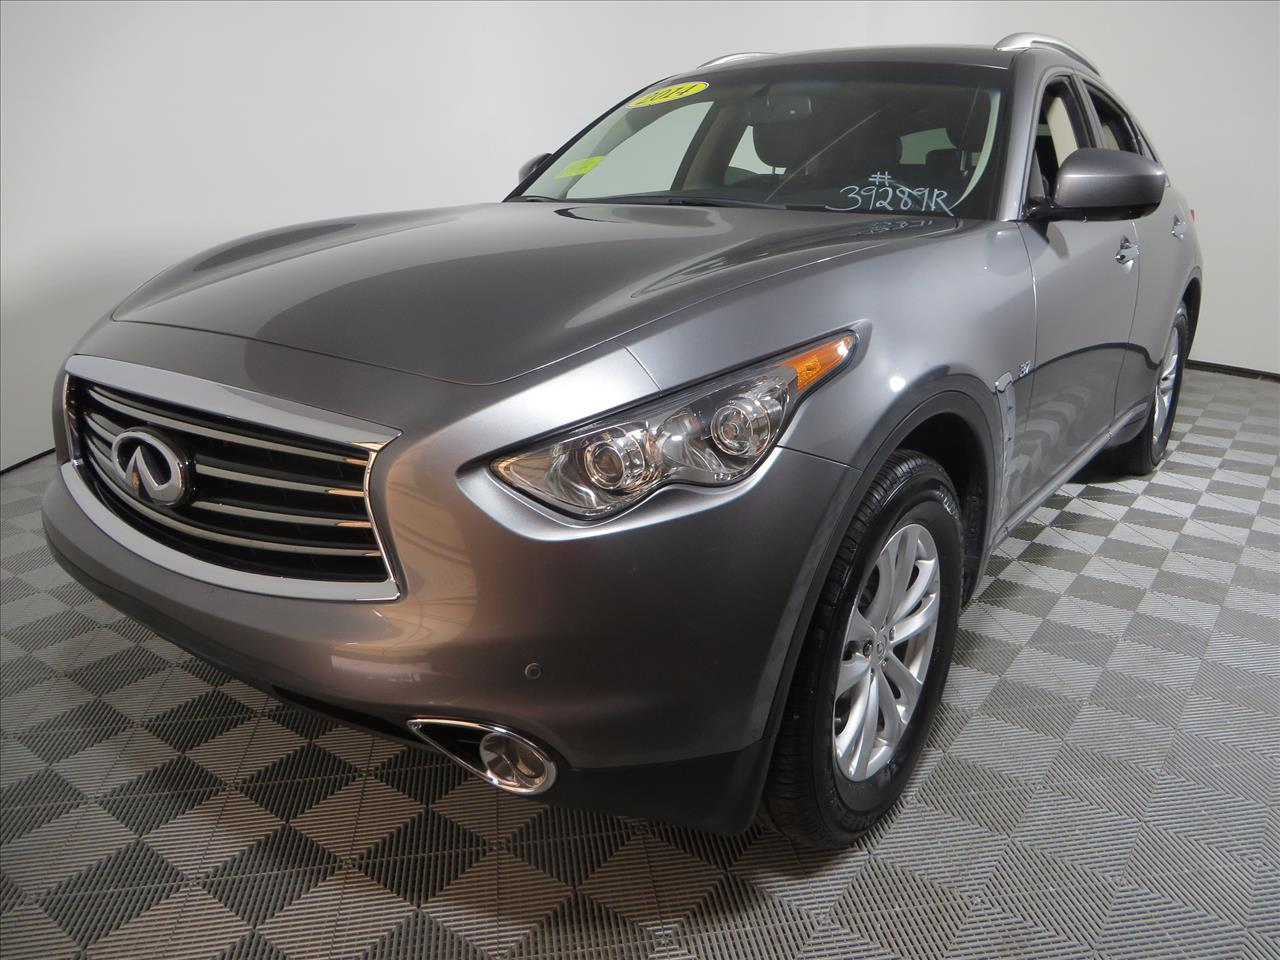 2014 infiniti qx70 for sale in south easton ma. Black Bedroom Furniture Sets. Home Design Ideas